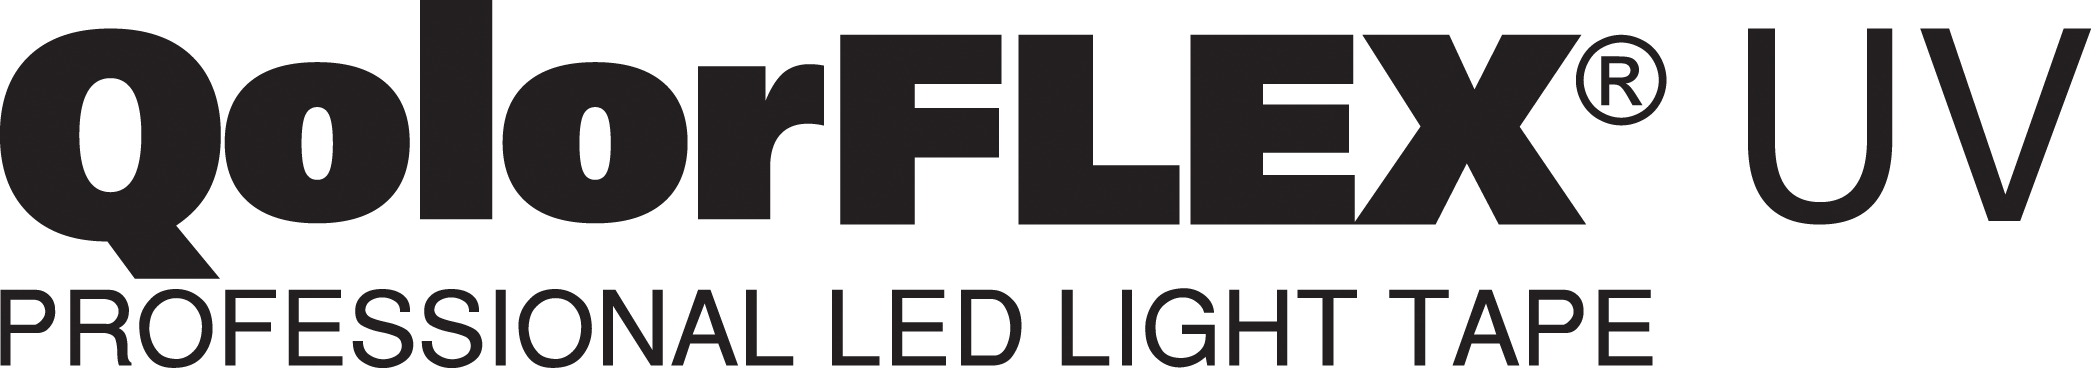 QolorFLEX UV LED Tape logo